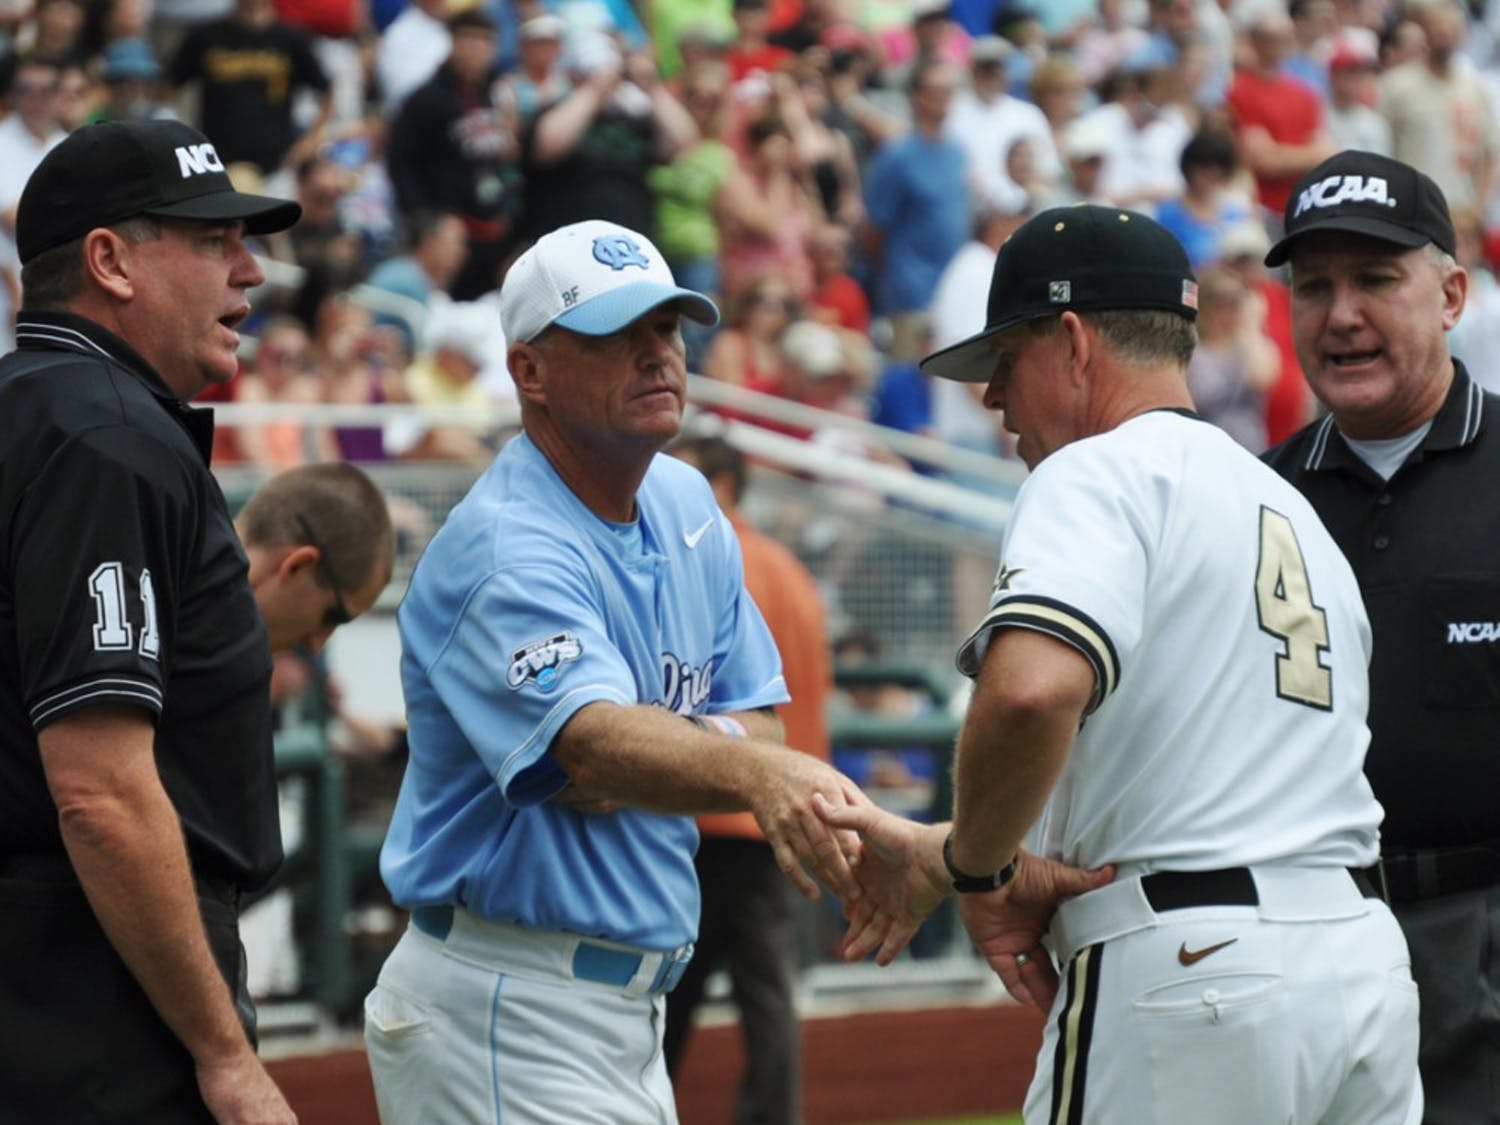 Mike Fox shakes the hand of Vanderbilt's head coach Tim Corbin. Vanderbilt would go on to knock UNC out of the College World Series.